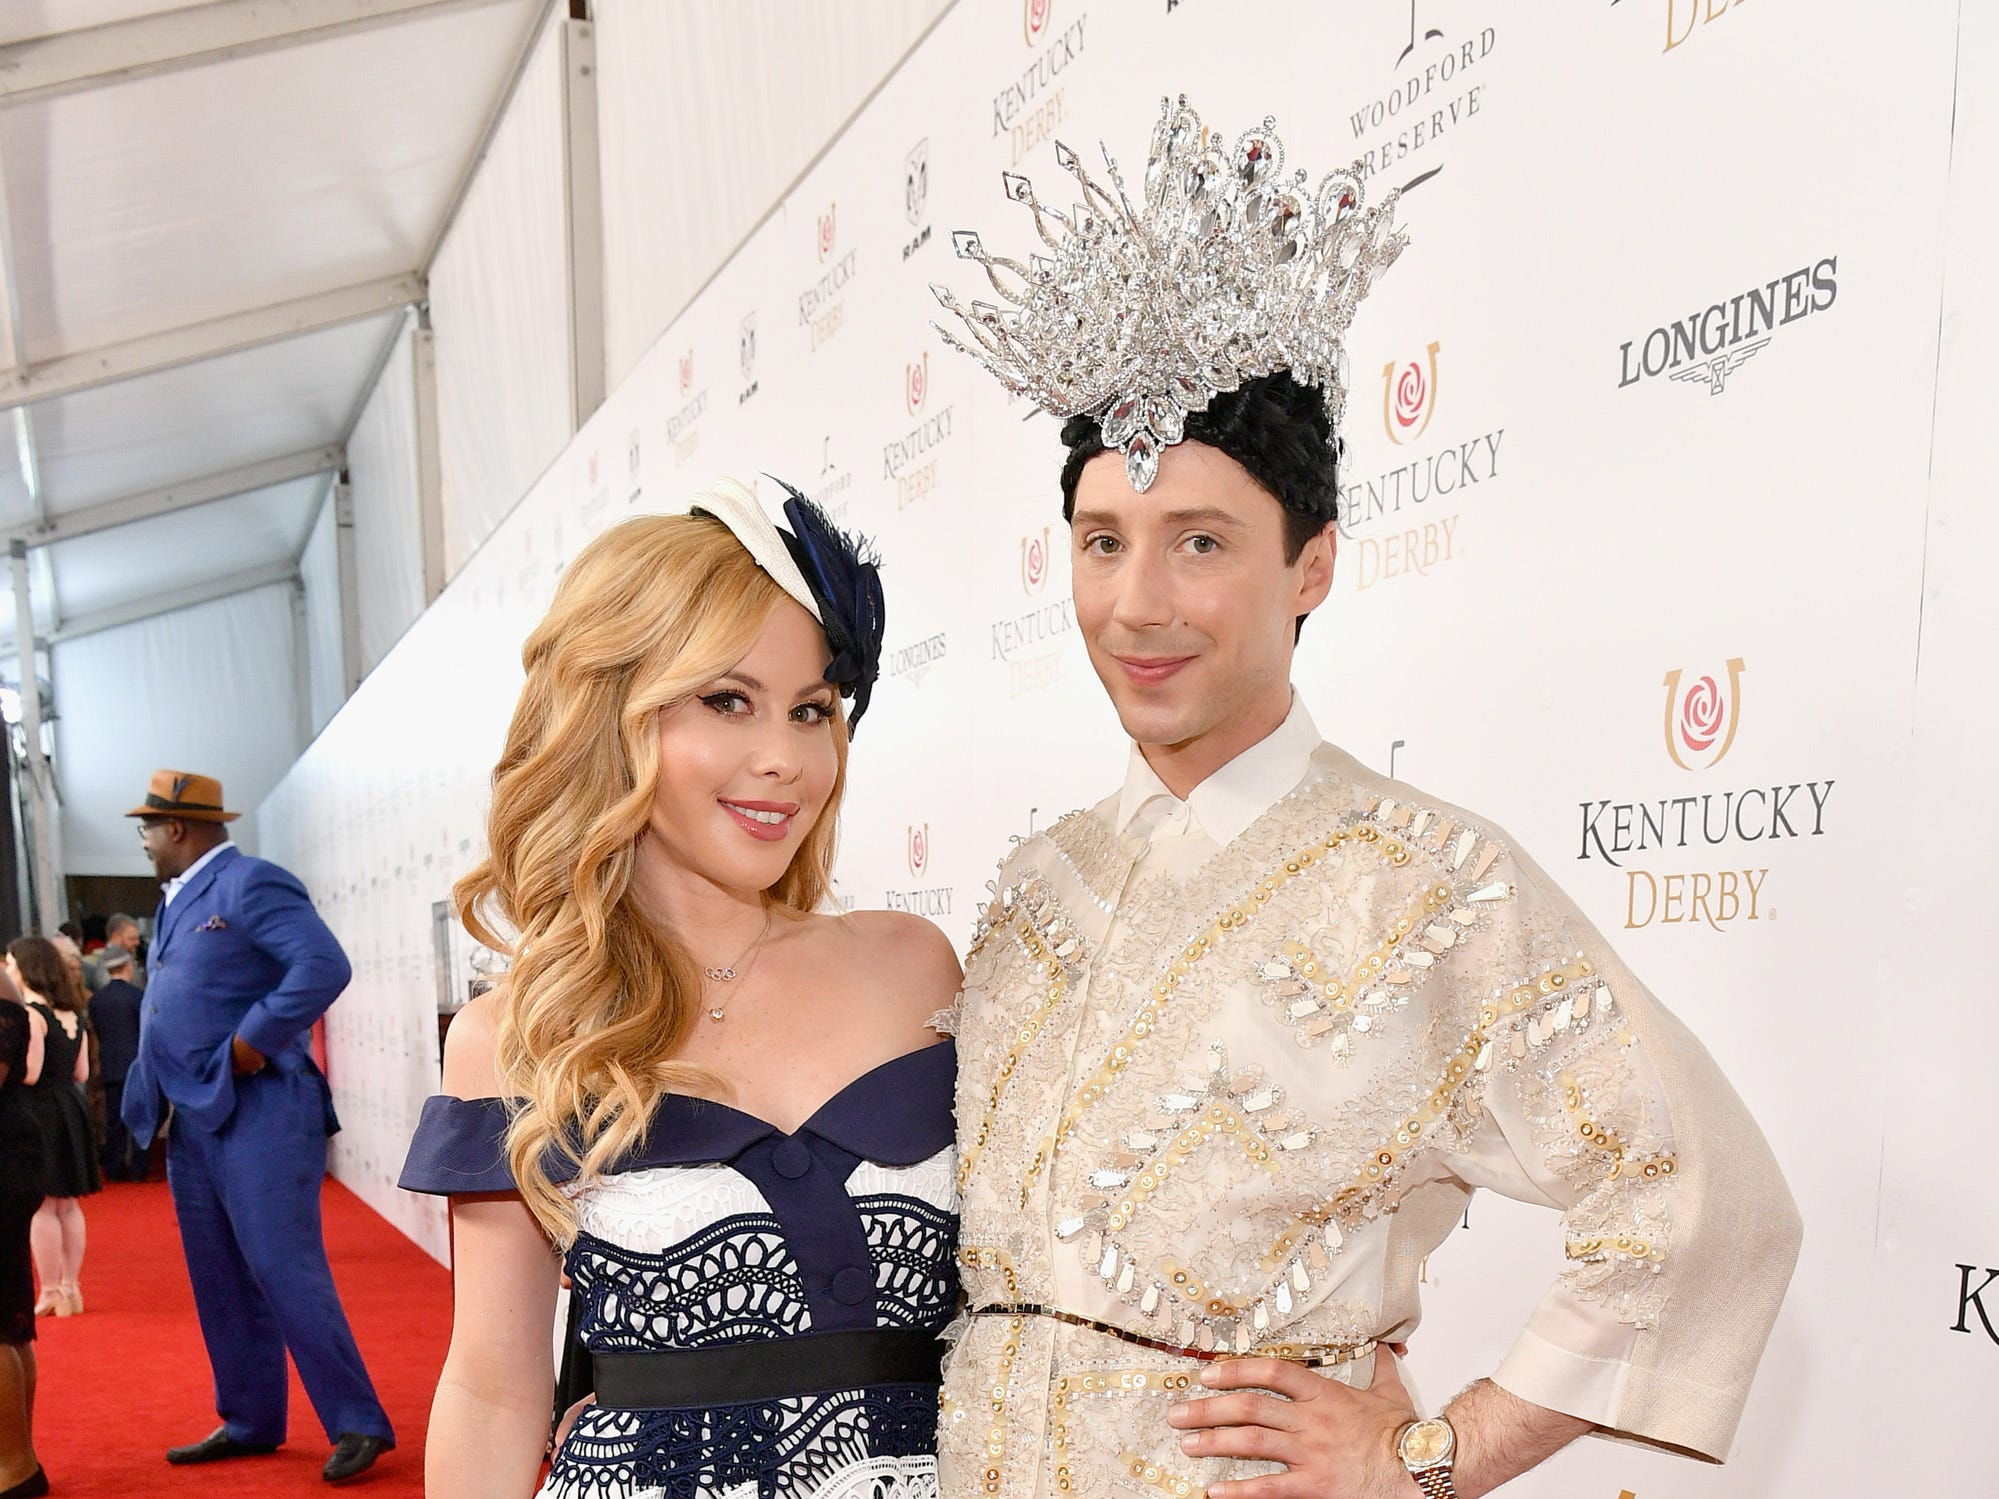 May 5: Figure skaters Tara Lipinski and Johnny Weir attend the Kentucky Derby.